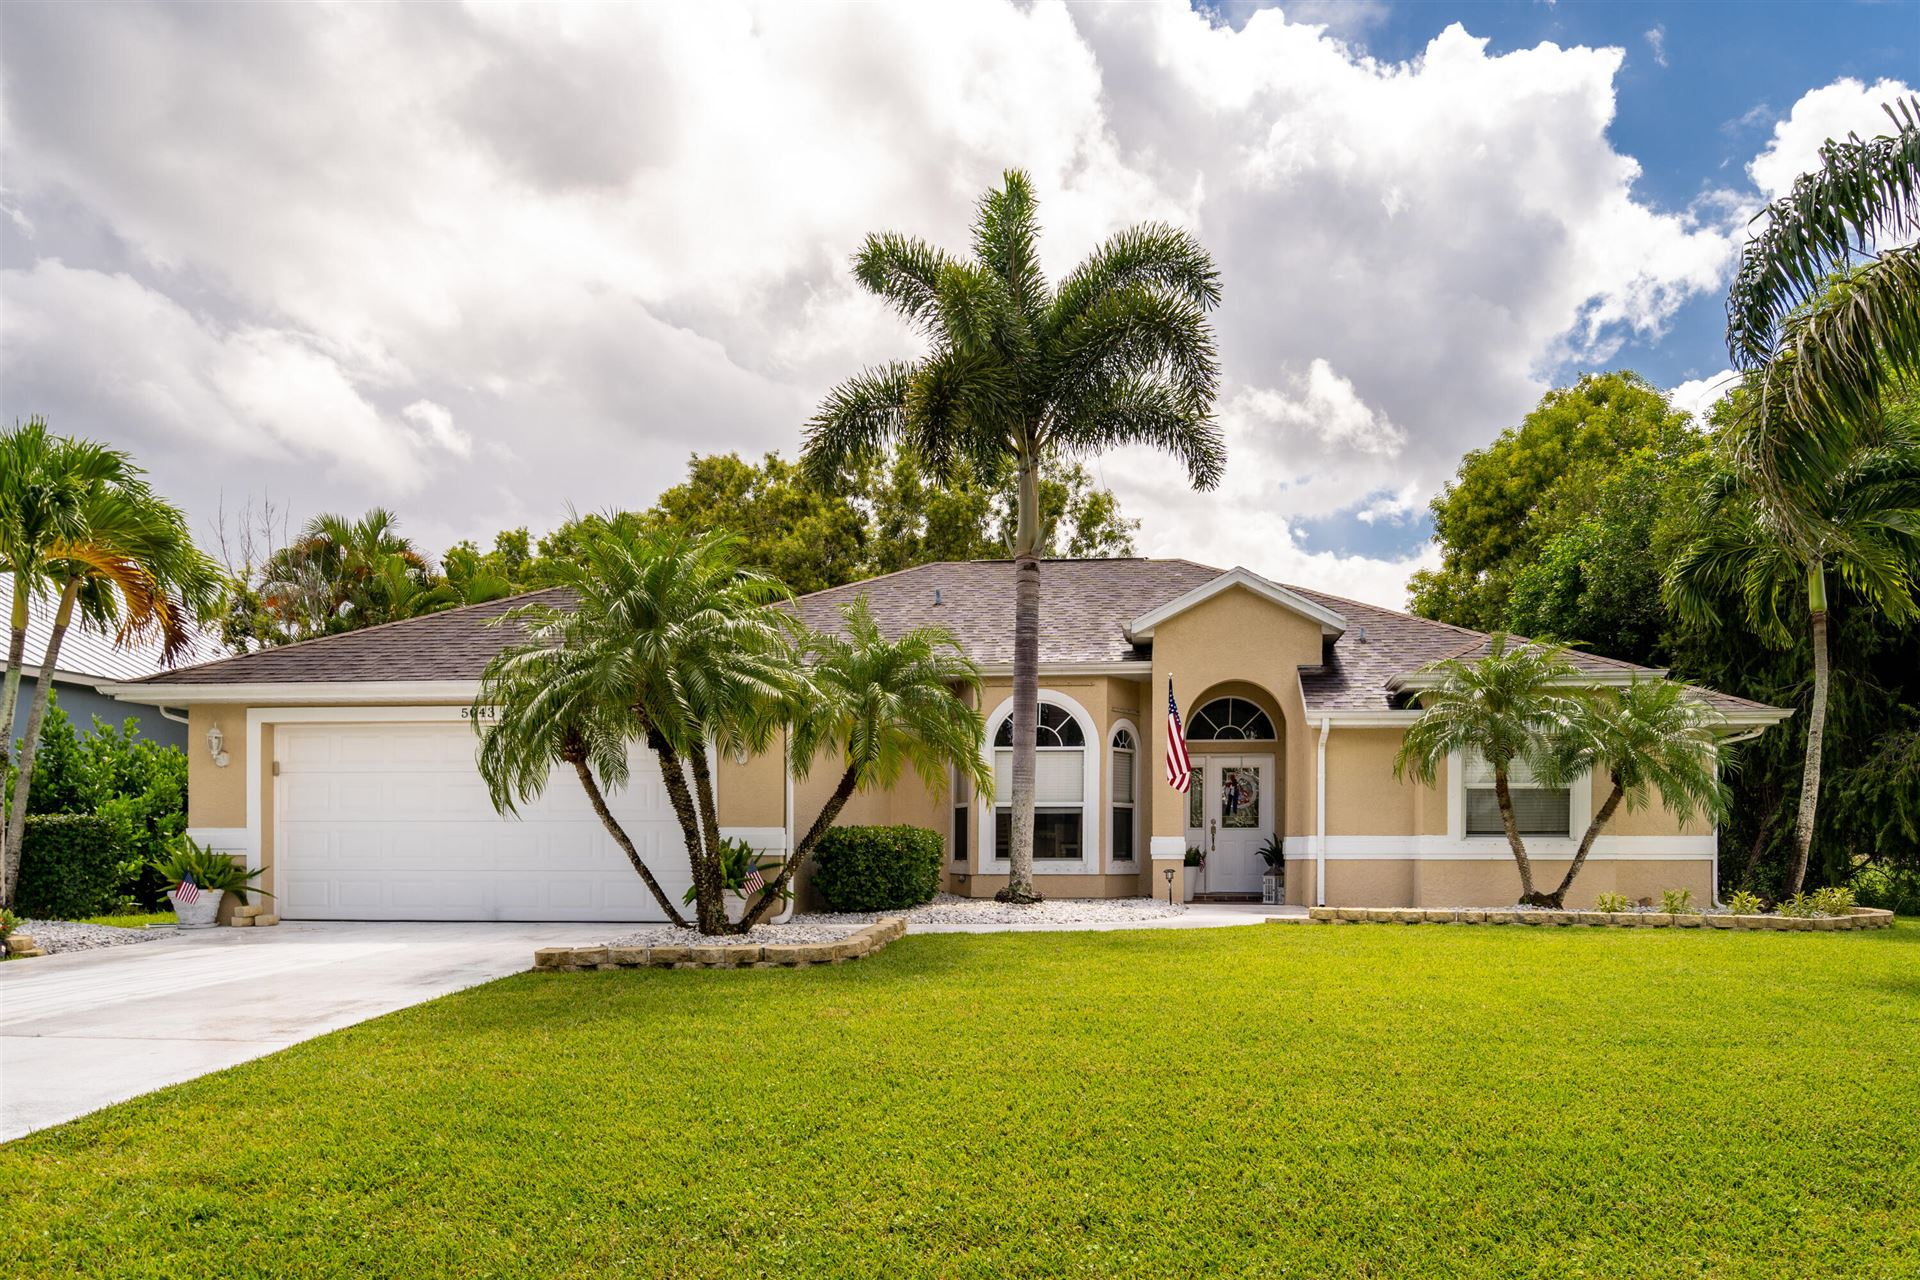 Photo of 5043 NW Rugby Drive, Port Saint Lucie, FL 34983 (MLS # RX-10746303)